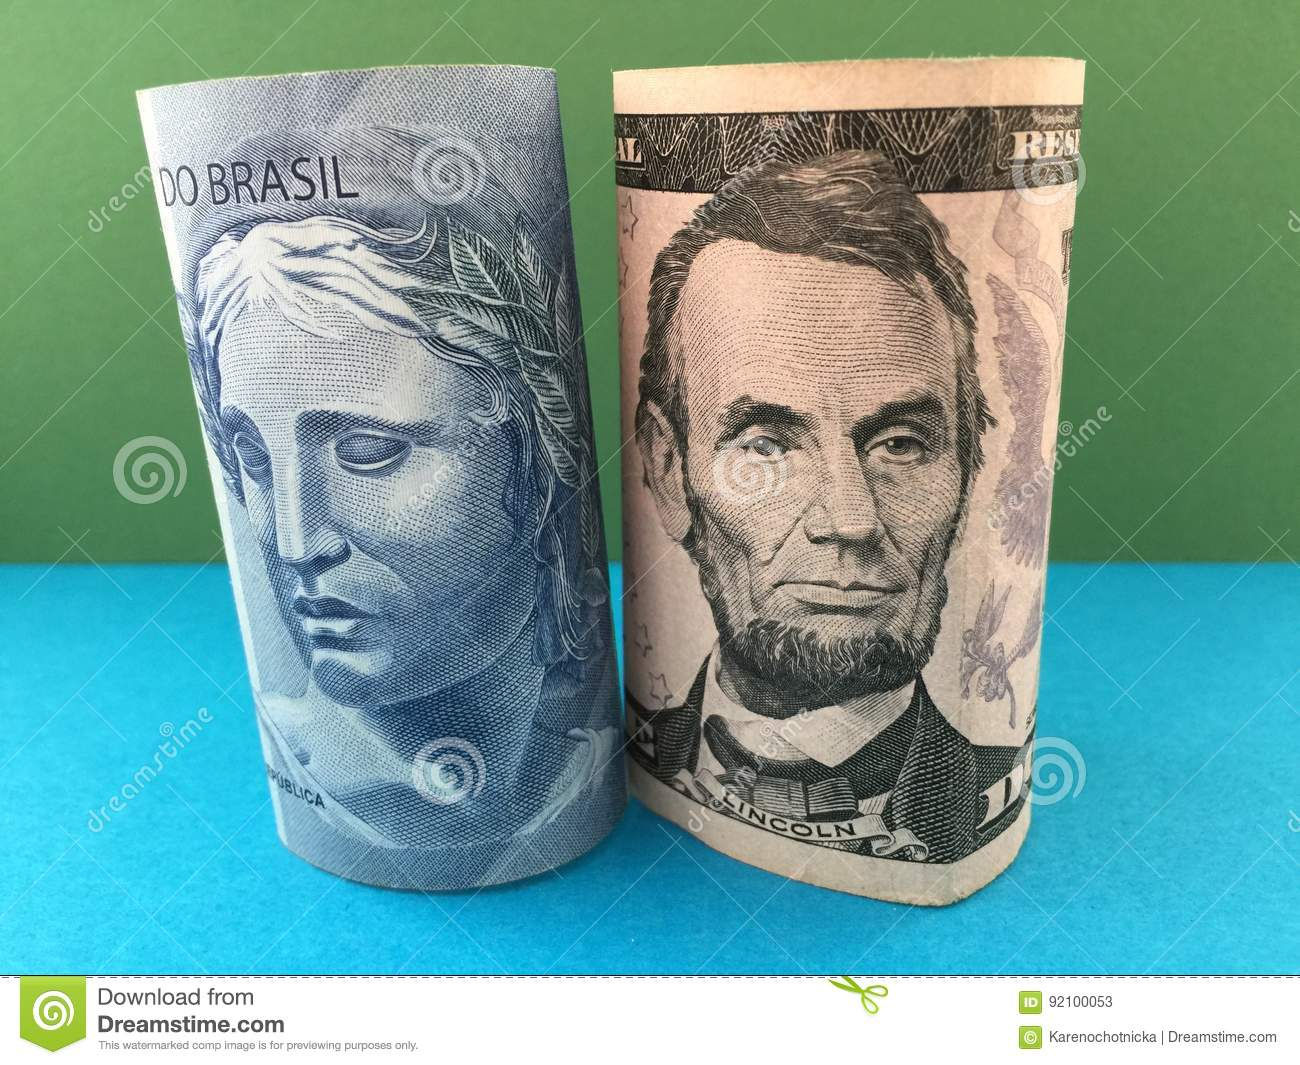 Brazilian Real Versus US Dollar Stock Image - Image of federal, currency: 92100053